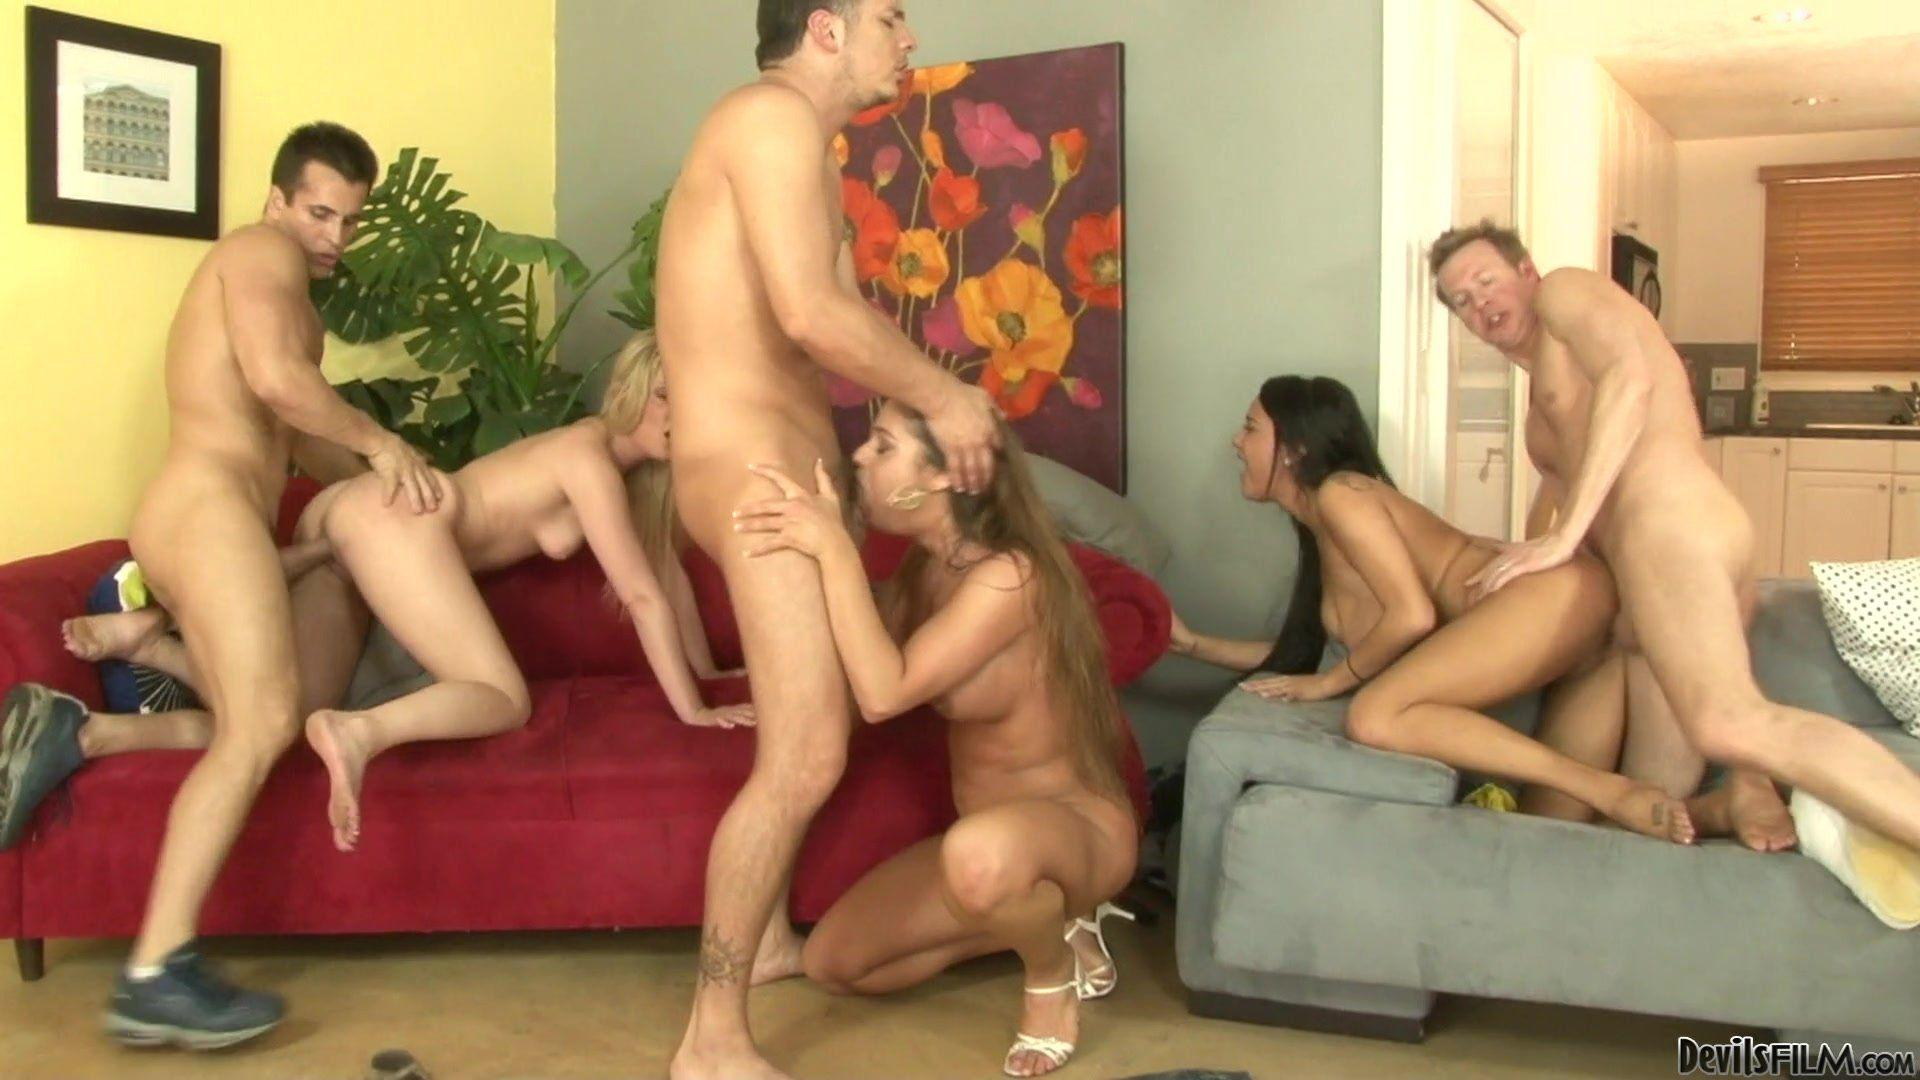 couch sex couples orgy hot nude comments